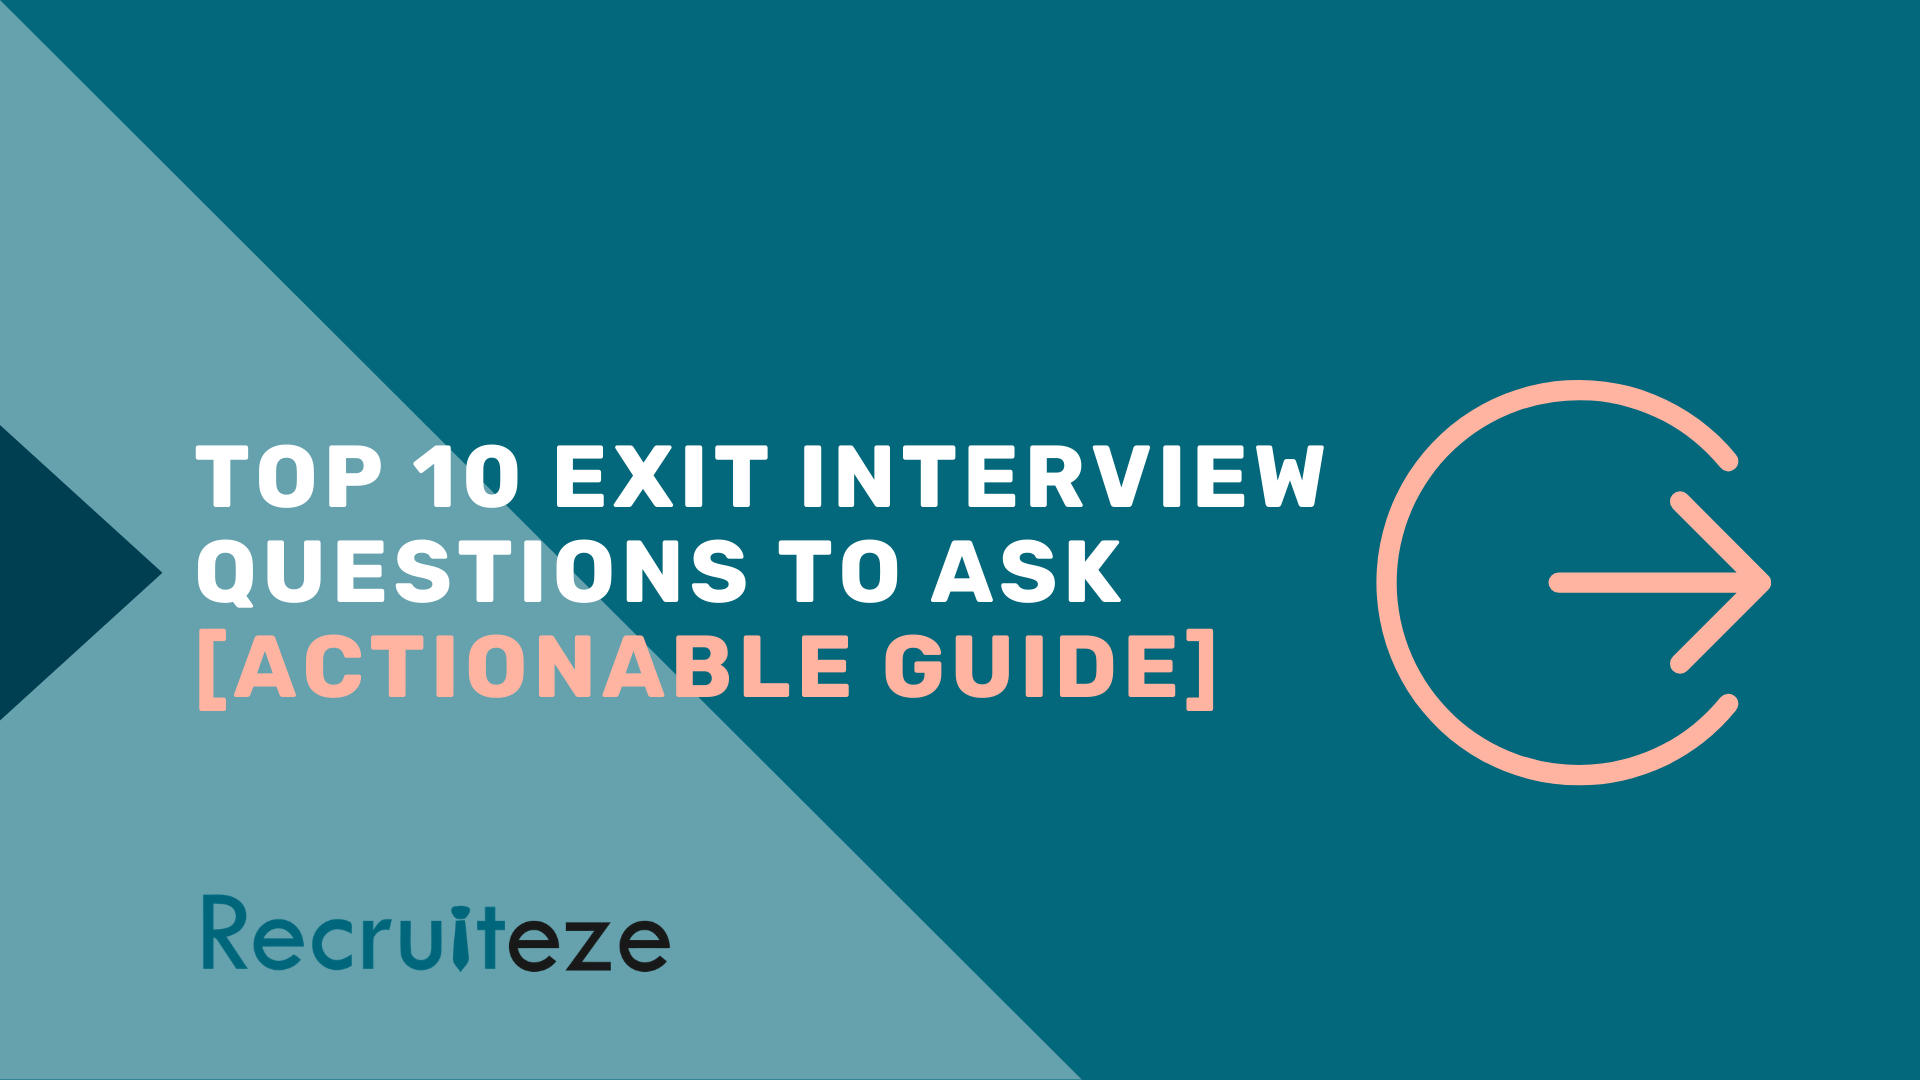 Top 10 exist interview questions to ask - Recruiteze featured image